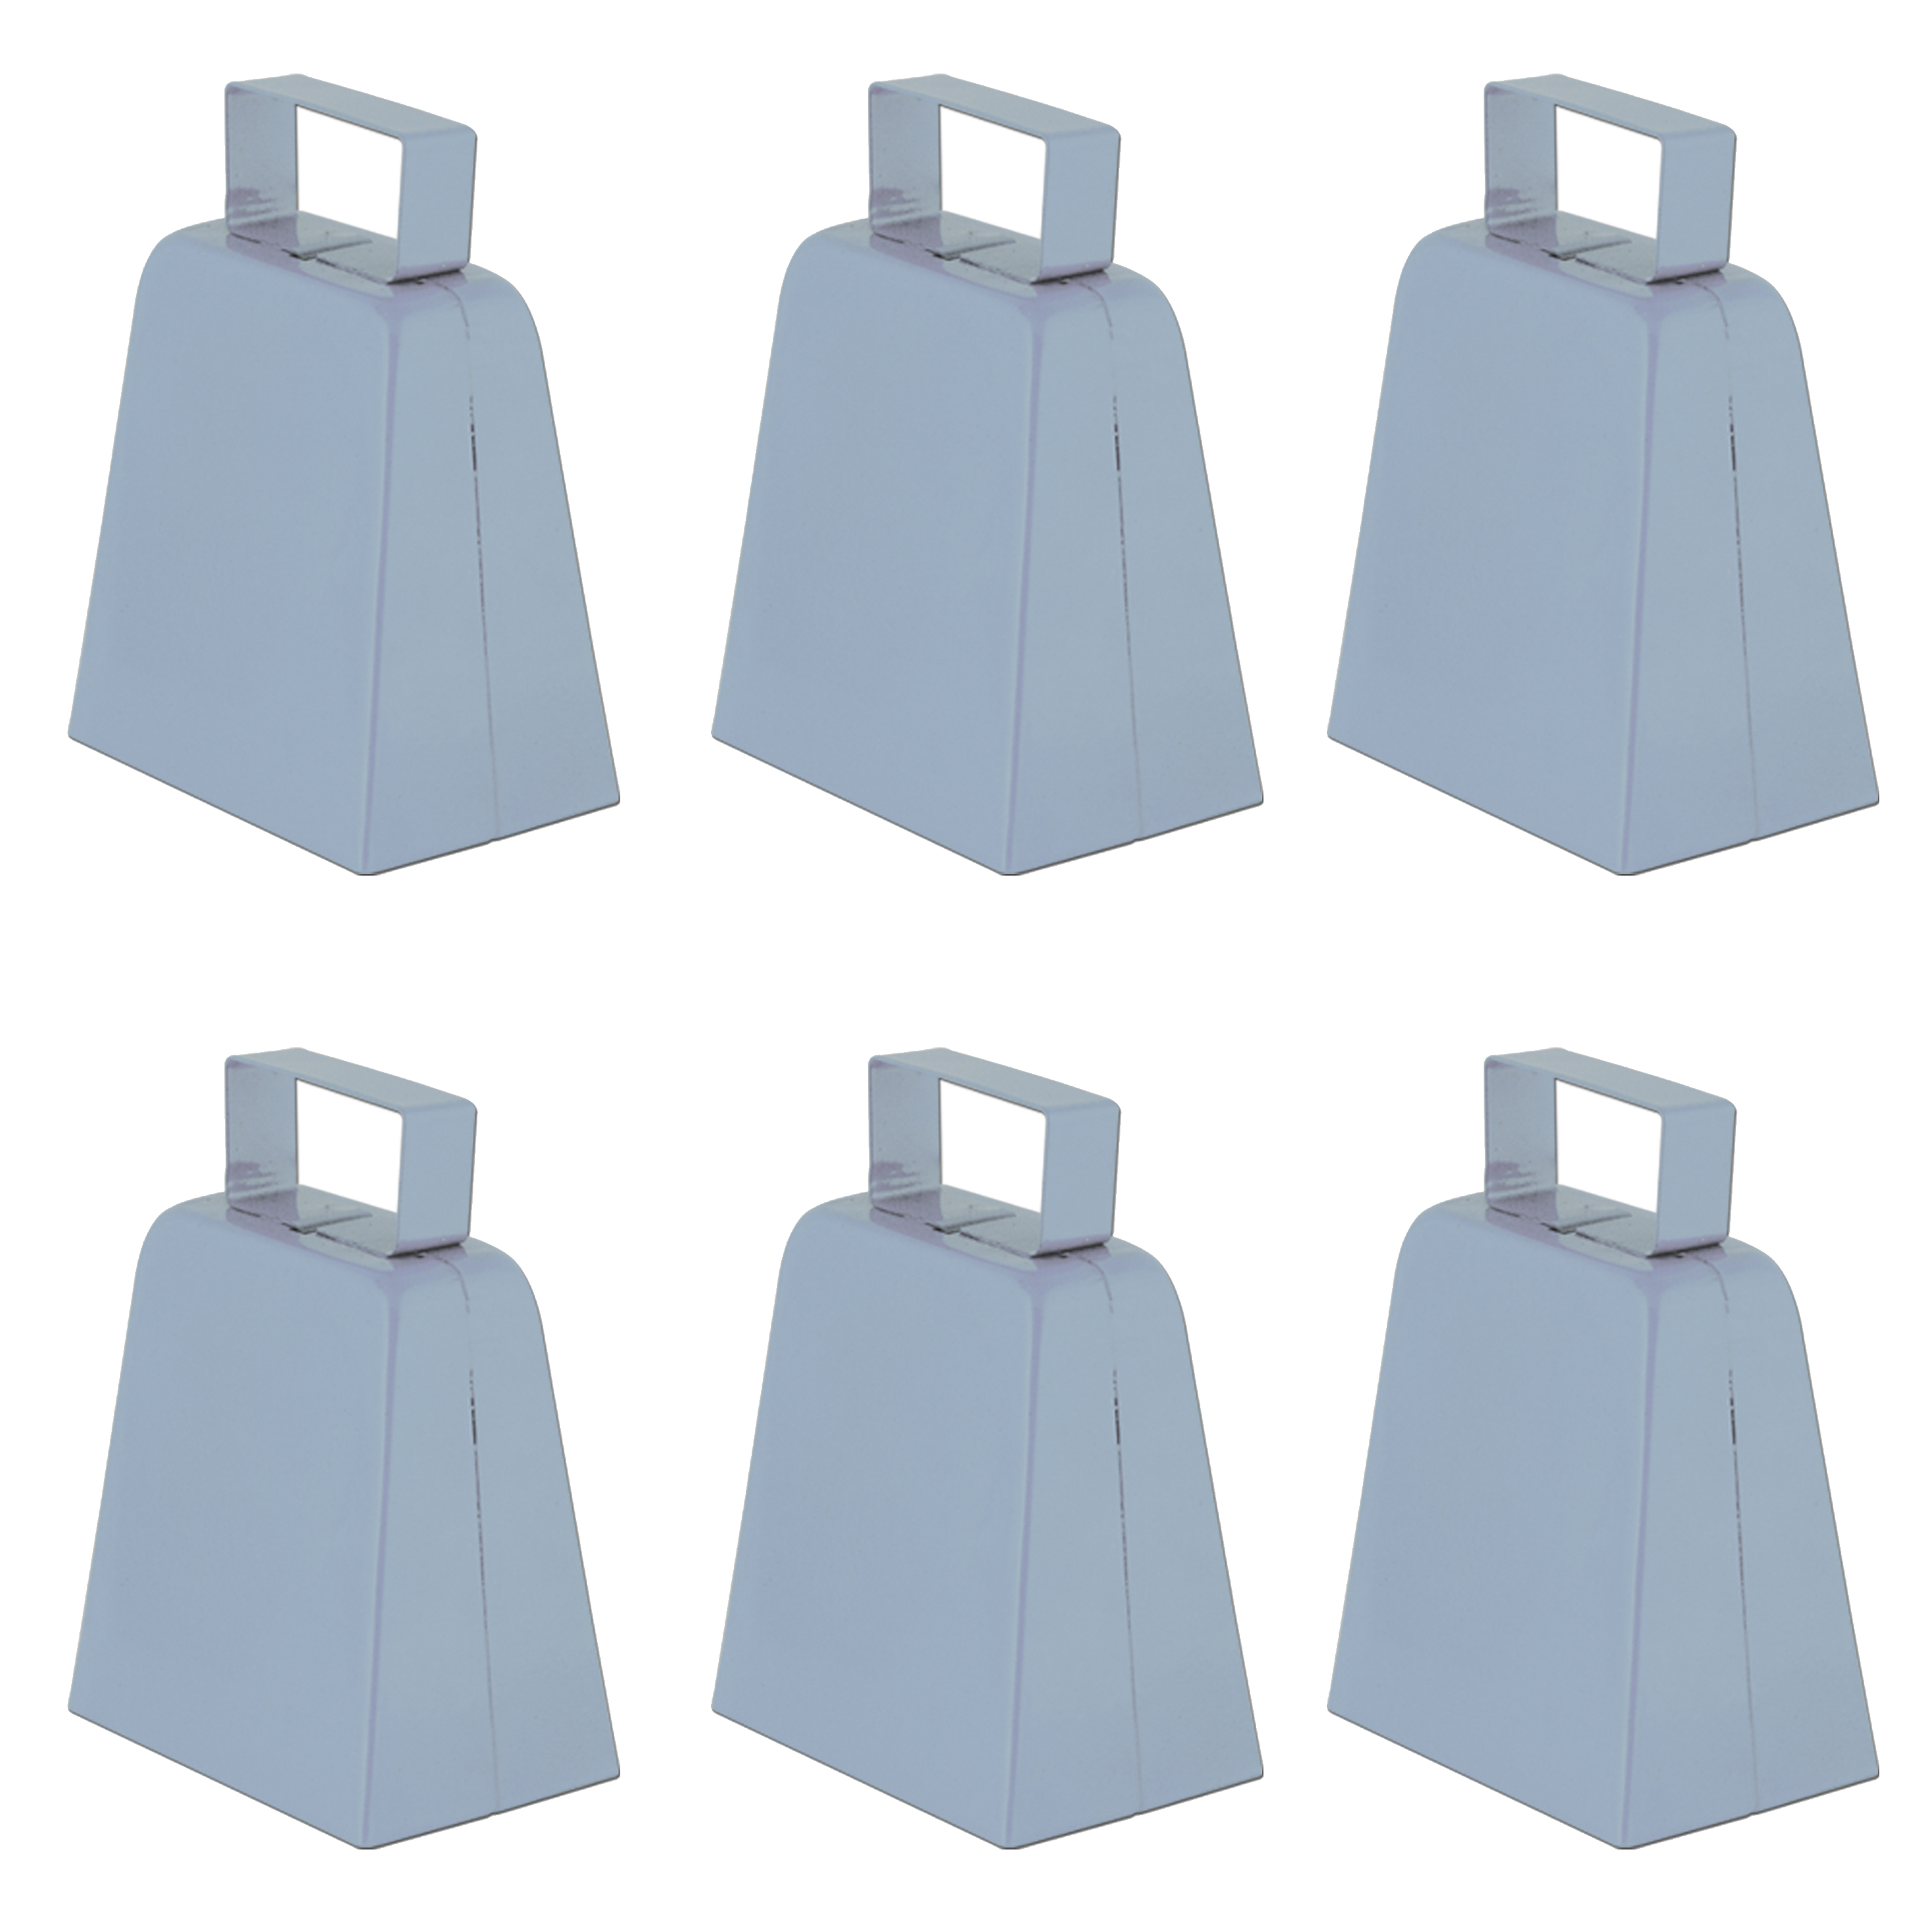 4 Set Of 6 Metal Cowbell Cow Bell Sports Toy Instrument Noisemaker